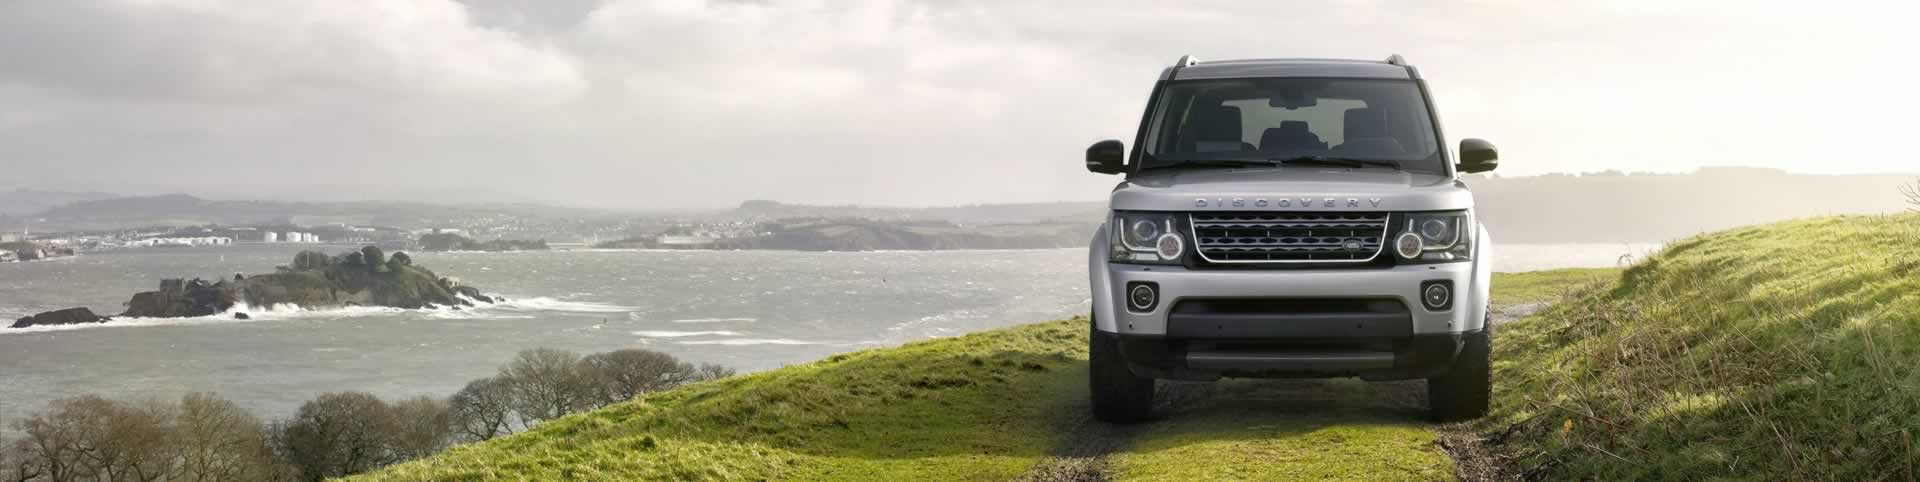 LAND_ROVER_DISCOVERY_XXV